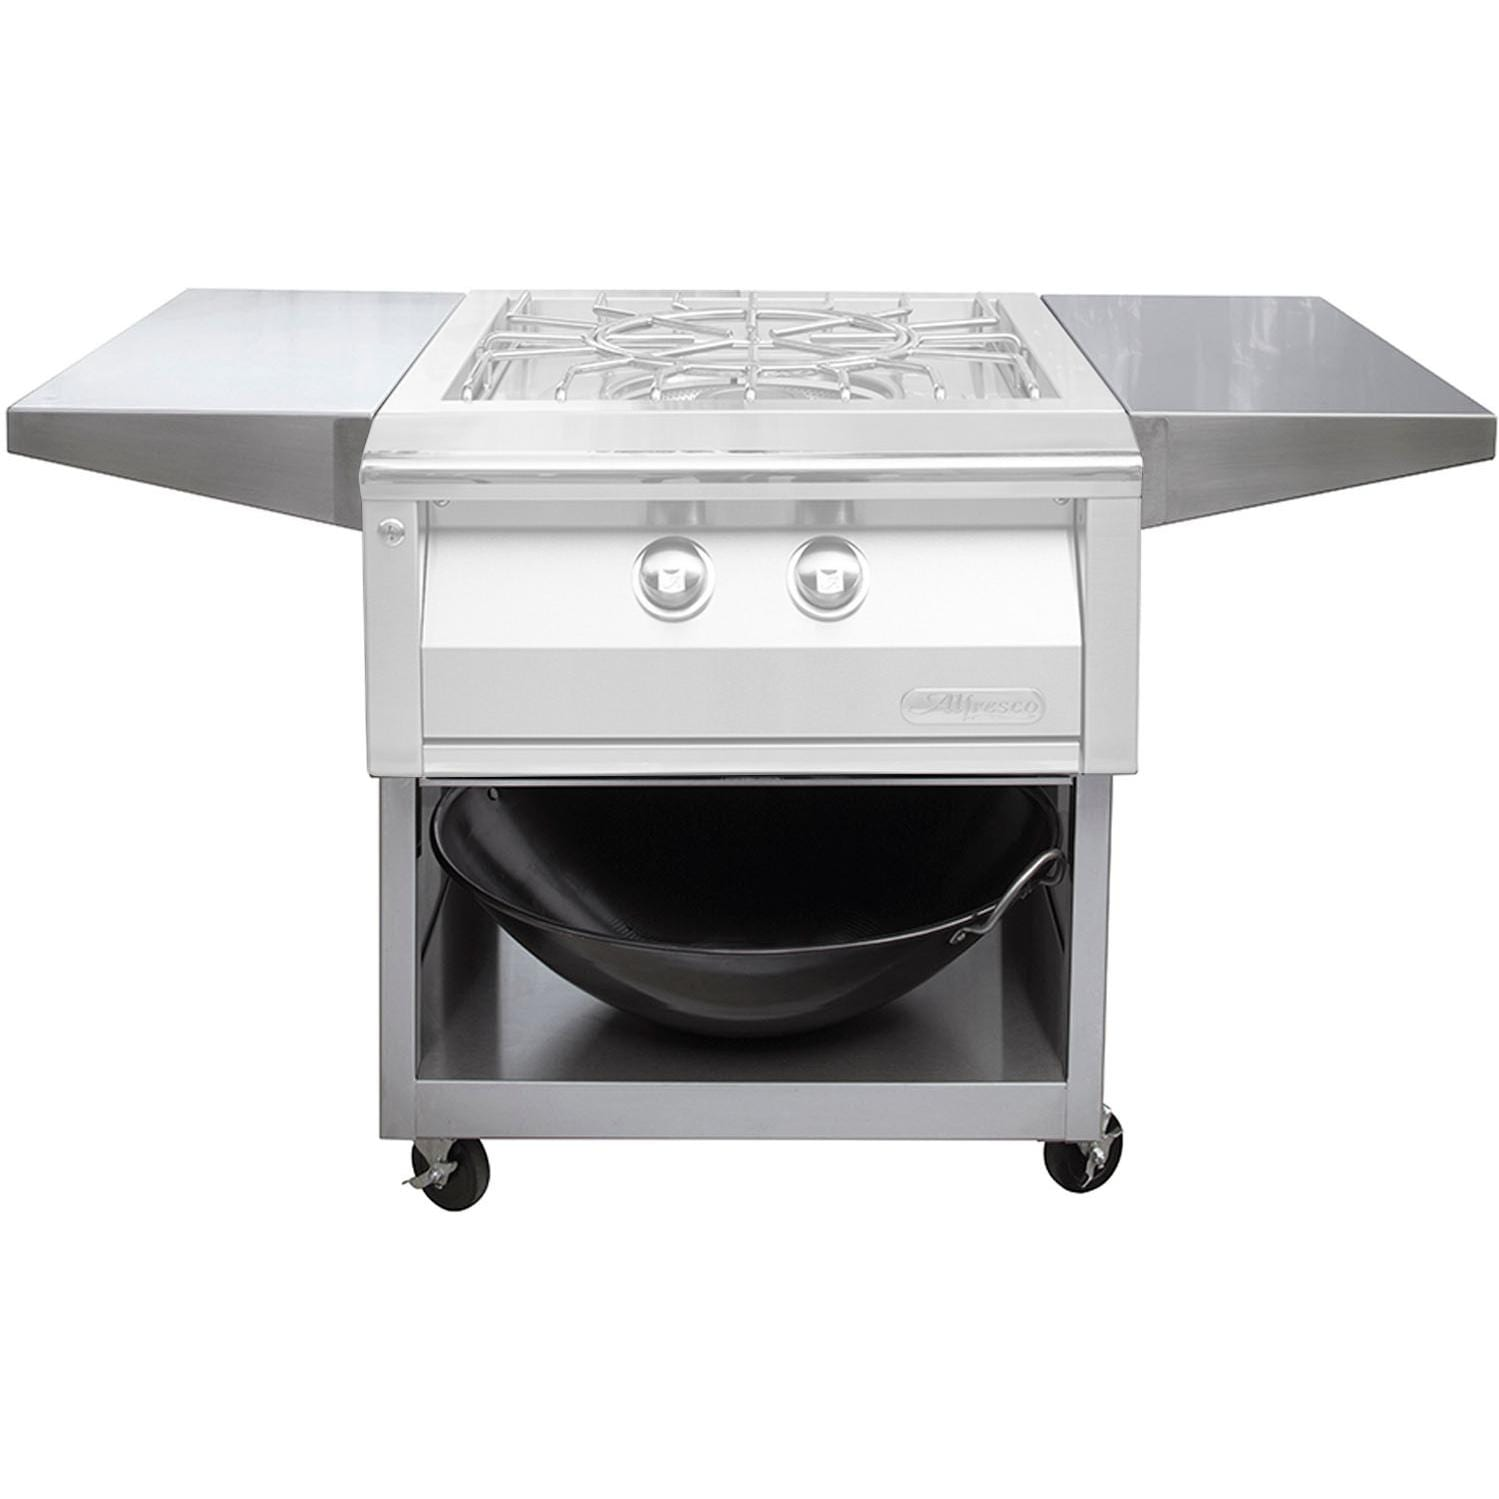 Alfresco 24-Inch Versa Power Cooker Cart